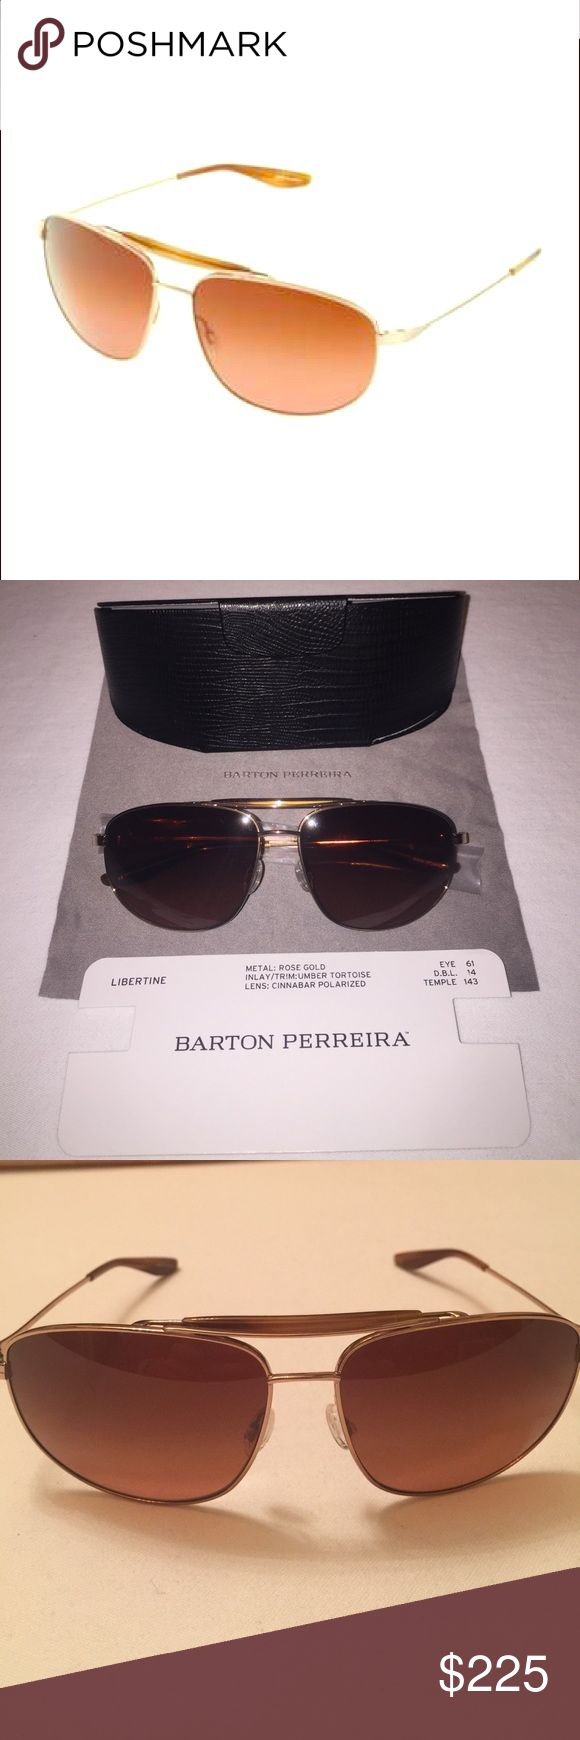 NWOT Barton Perreira Libertine sunglasses Barton Perreira Libertine style sunglasses. Rose gold metal aviator frames. Cinnamon polarized lenses. Double bridge with matte cobalt acetate brow bar. Signature Barton Perreira grill detail on temple. 100% UV/UVB protection. Made in Japan 🇯🇵! UNISEX Barton Perreira Accessories Glasses